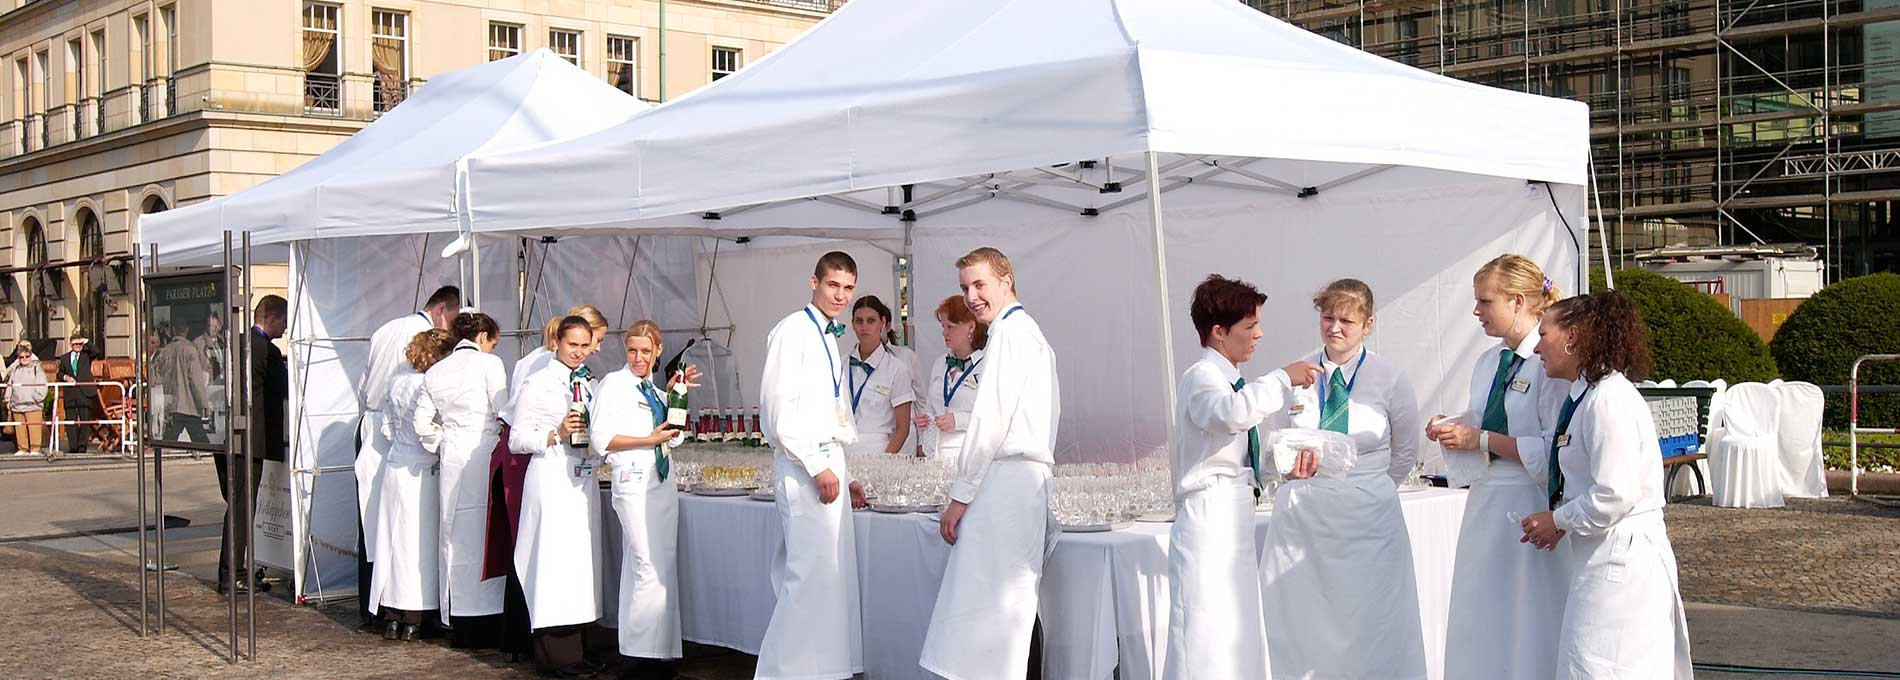 White canopy tent with chefs and buffet